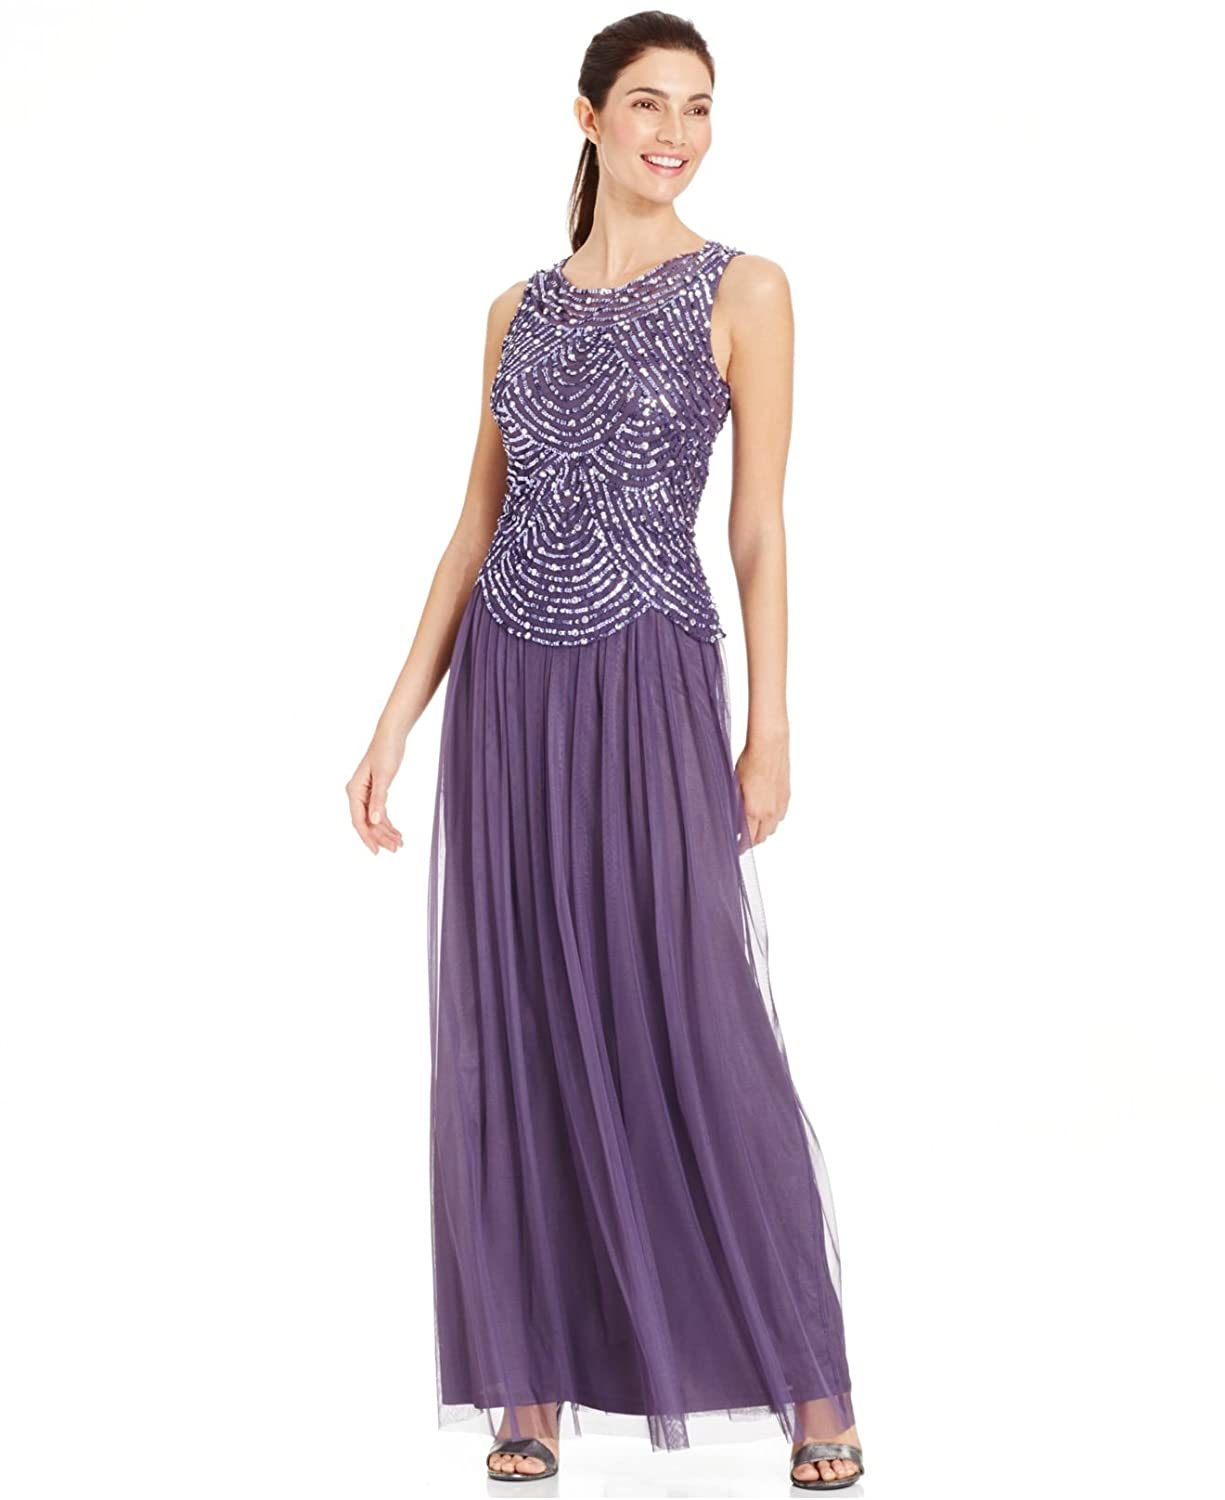 Patra Womens Sequined Sleeveless Formal Dress Purple Size 4 At